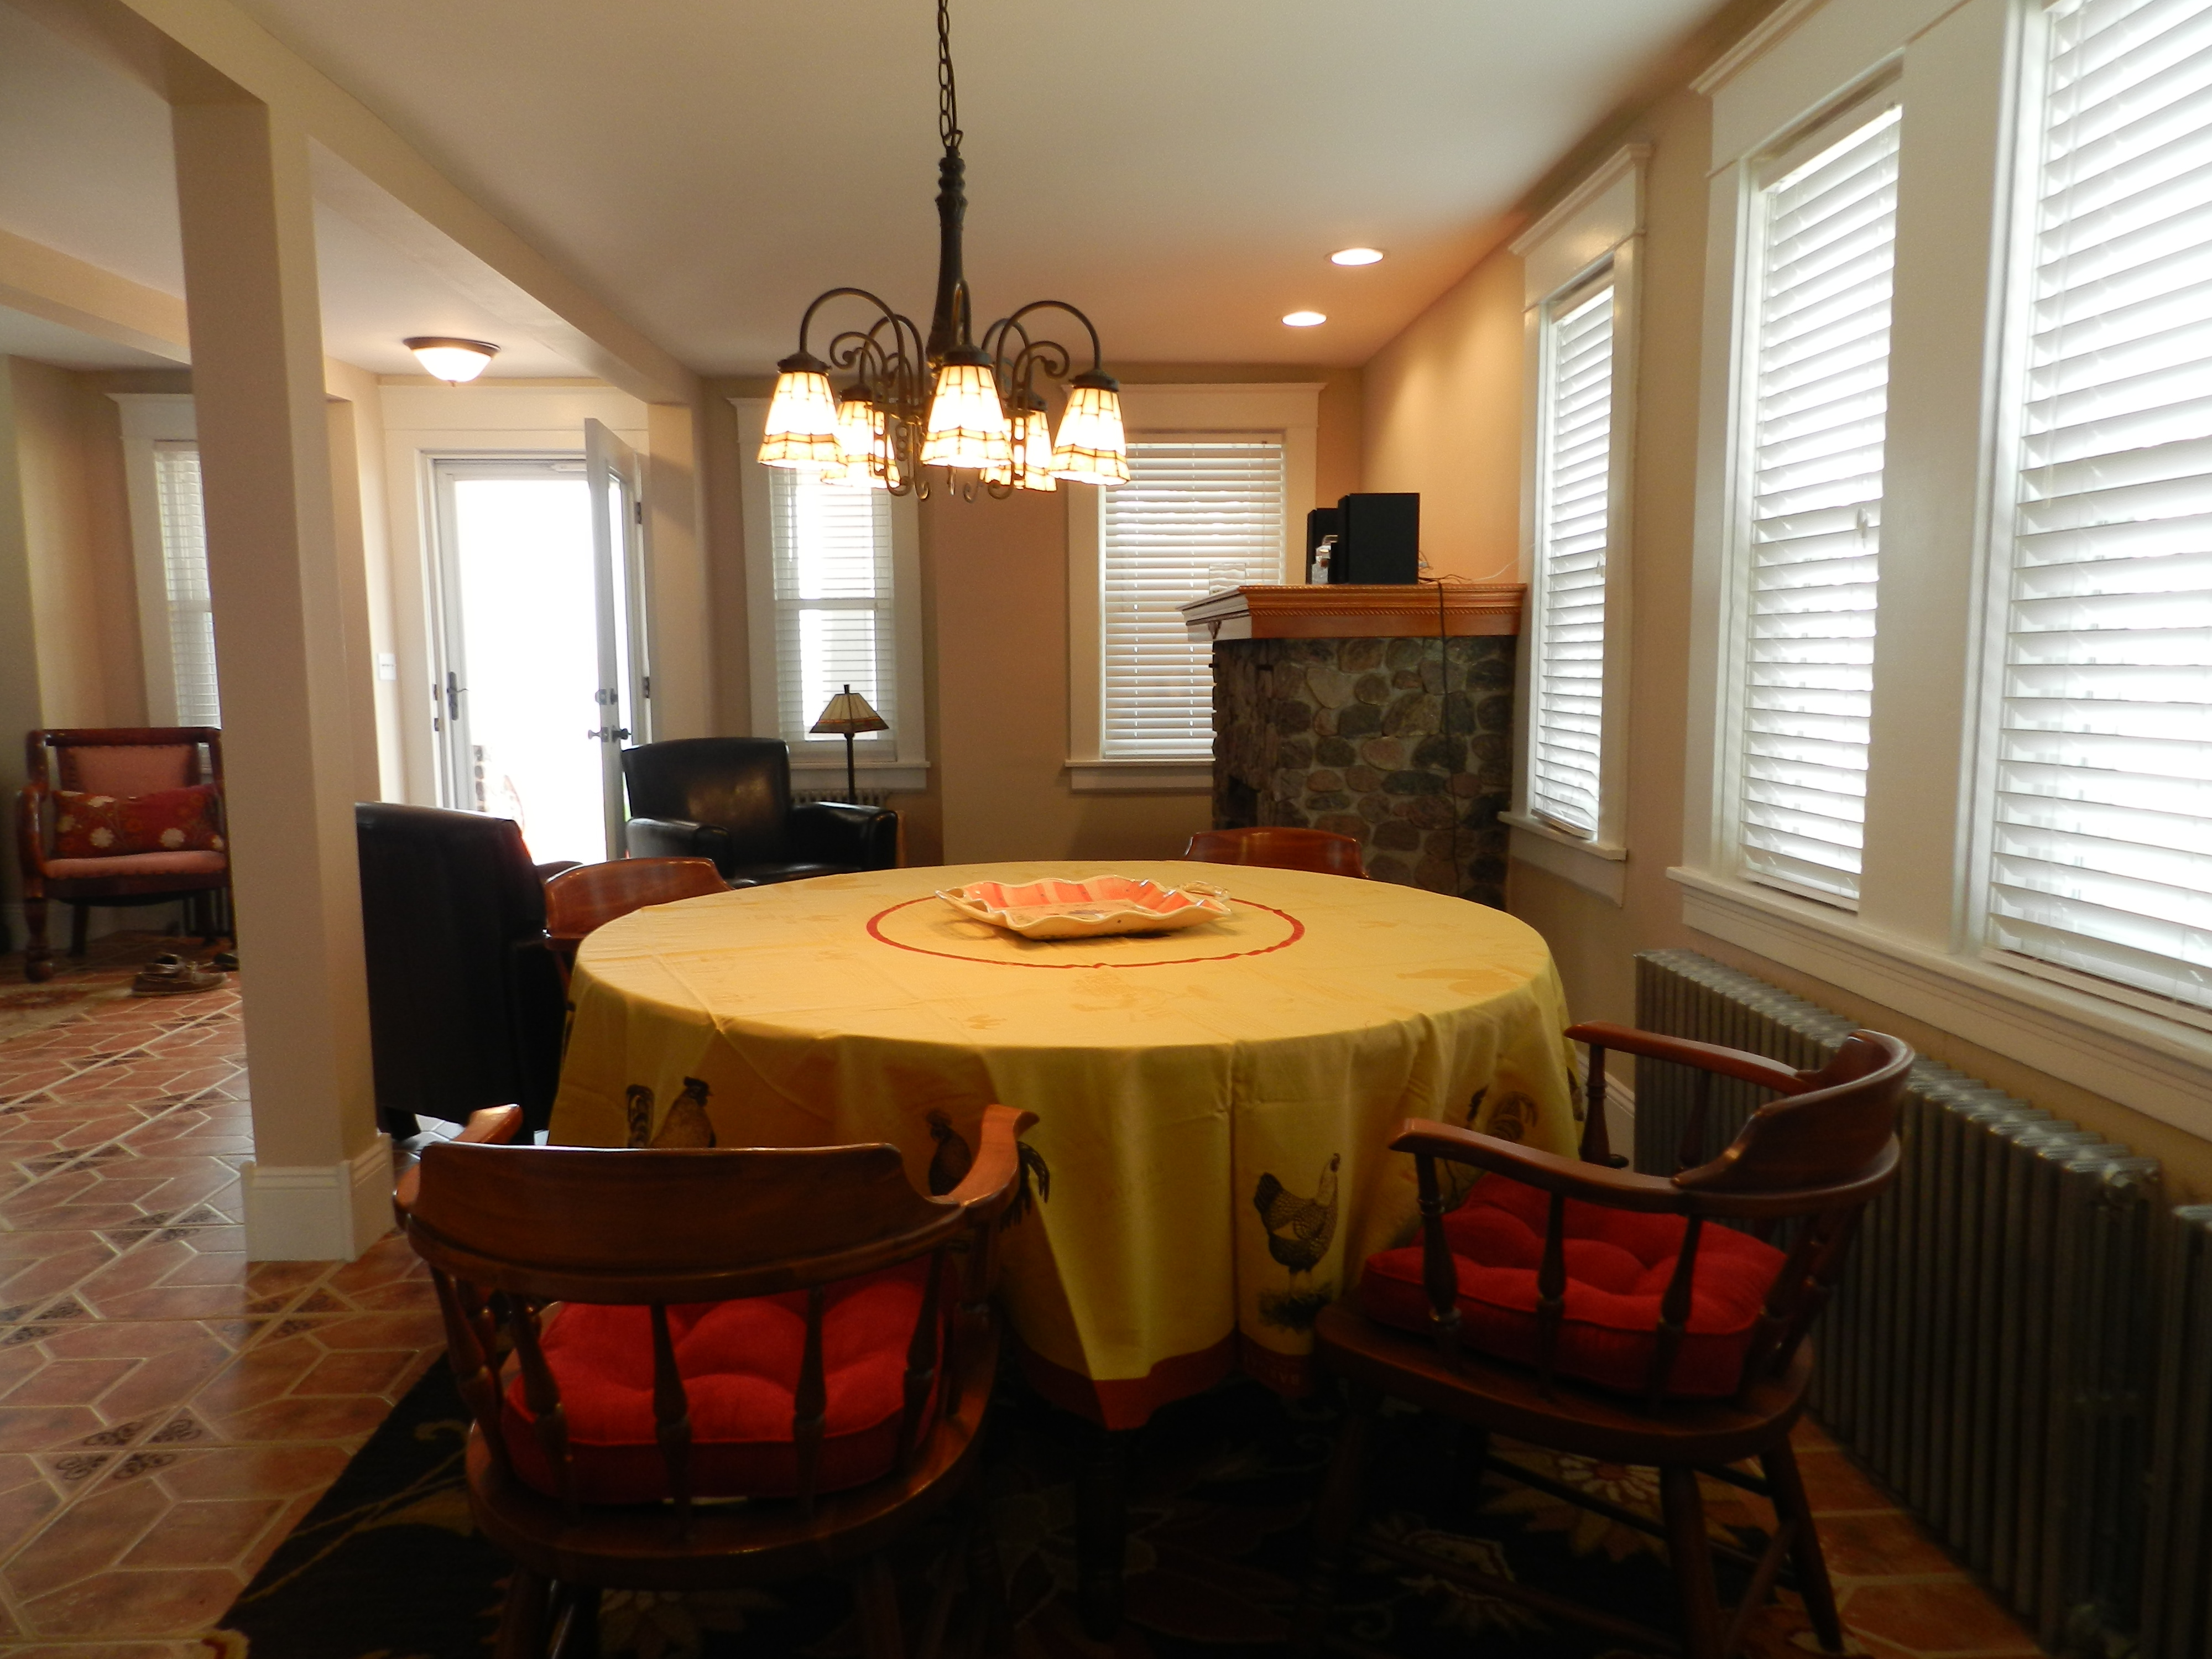 Dining Room with living area in background